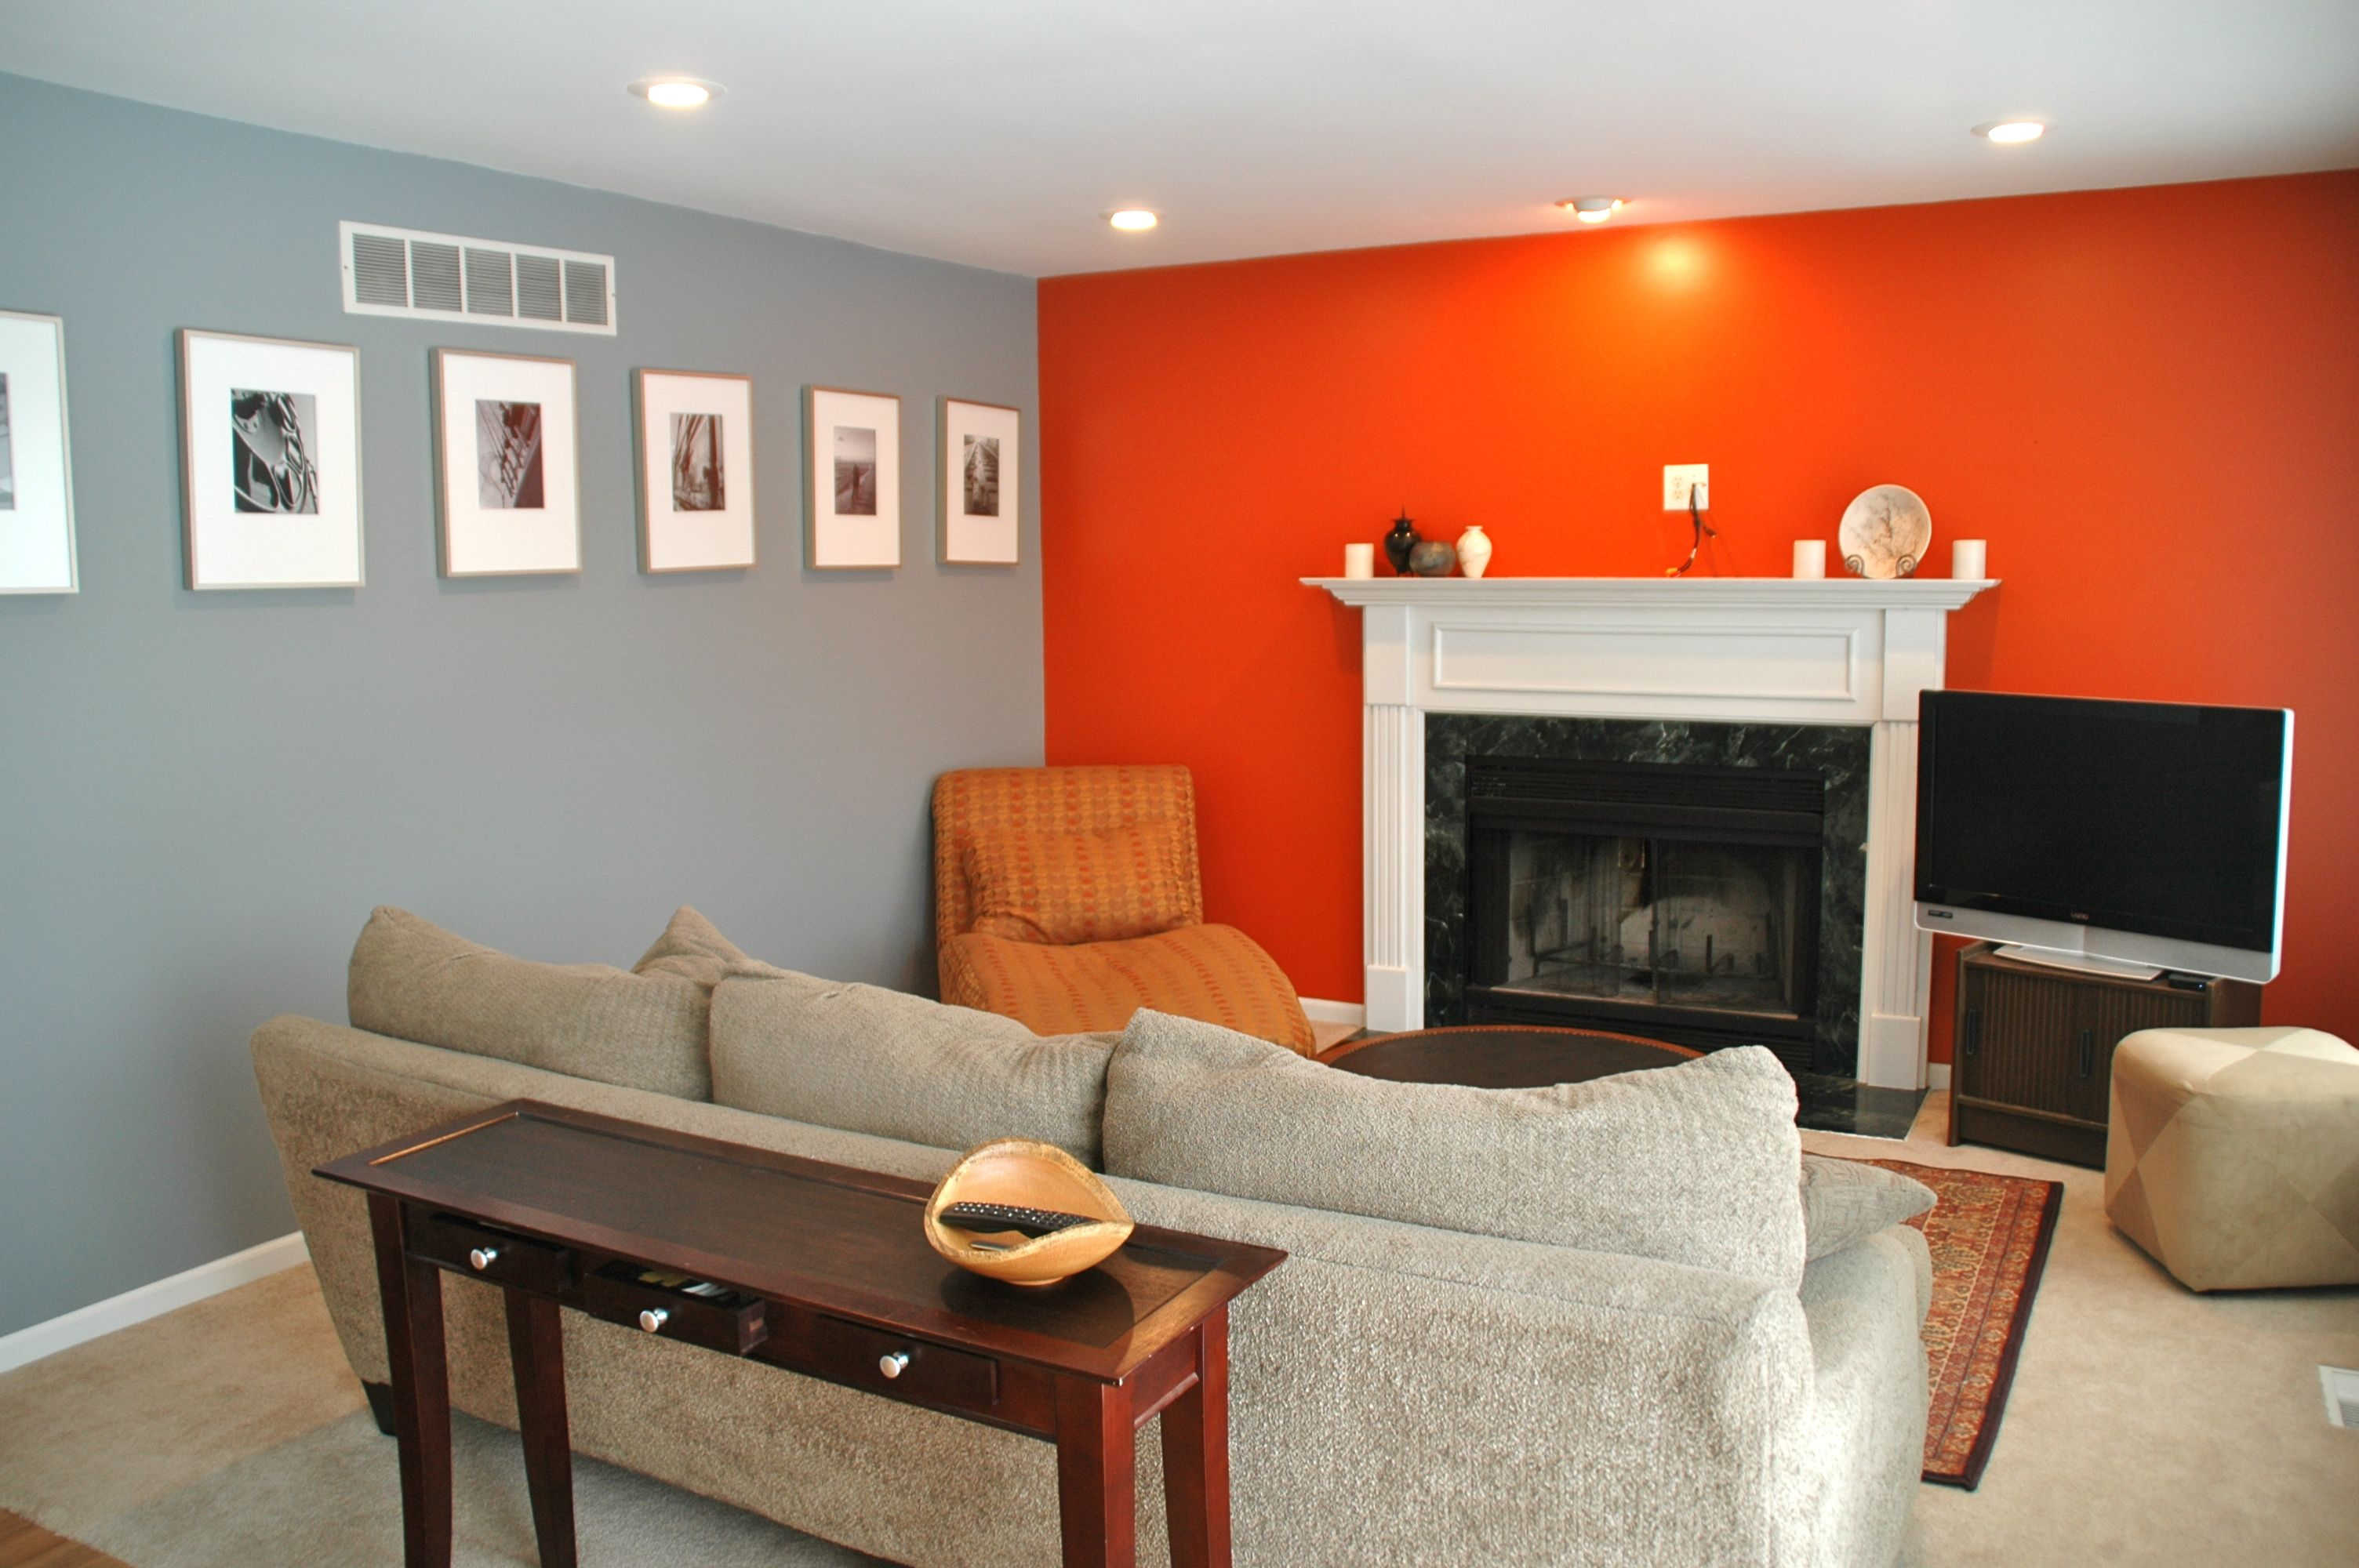 Bedroom Paint Ideas Orange grey + orange living room. | mine. | pinterest | orange living